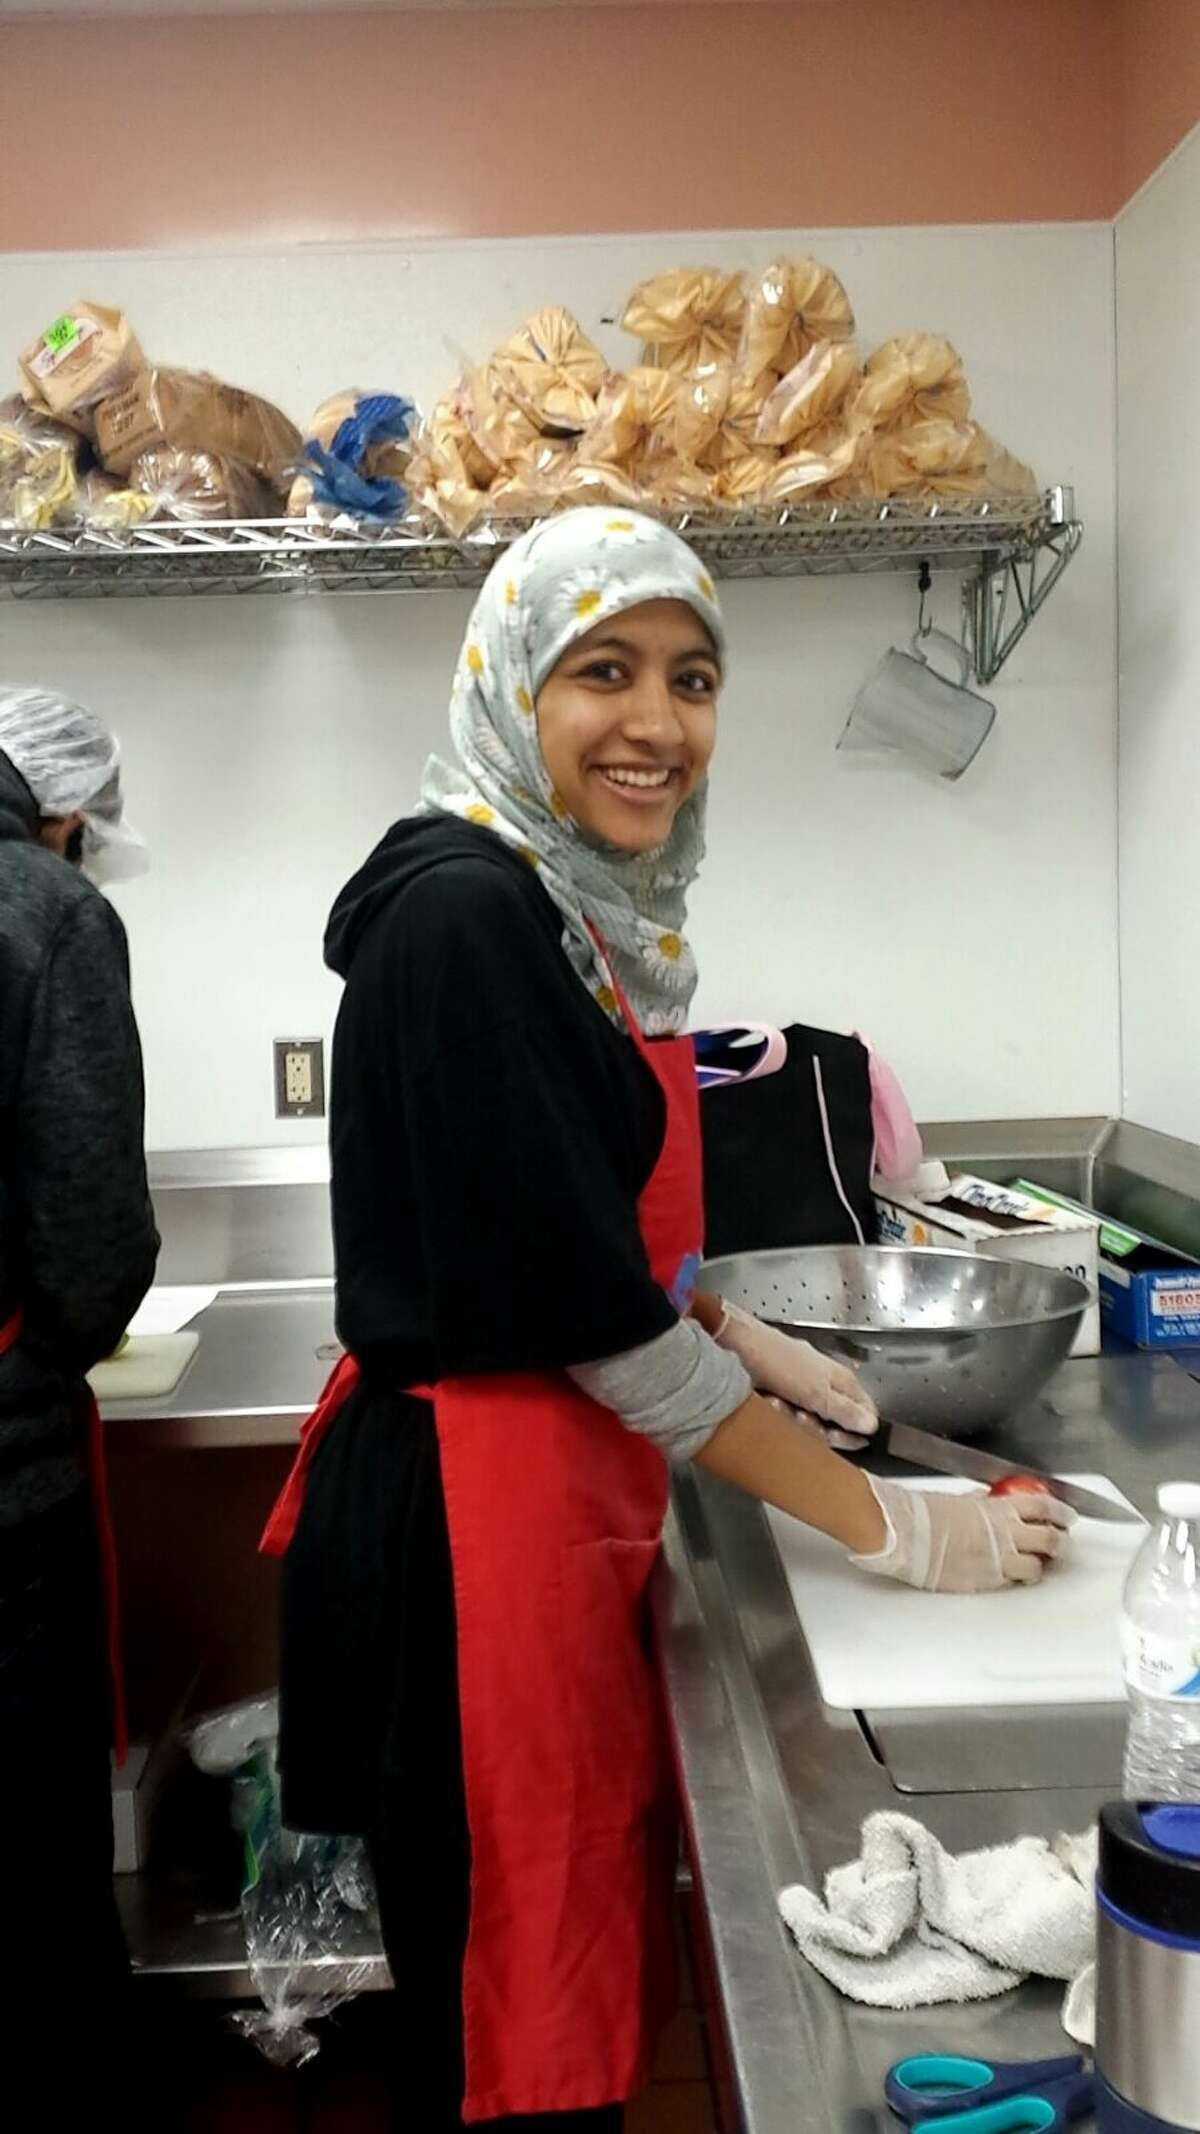 A volunteer with the Muslim Soup Kitchen Project prepares a meal for local homeless and needy people in this 2015 photo. They will participate in the inaugural National Muslim Soup Kitchen Day on Saturday at nine local sites. (Photo courtesy of Uzma Popal)